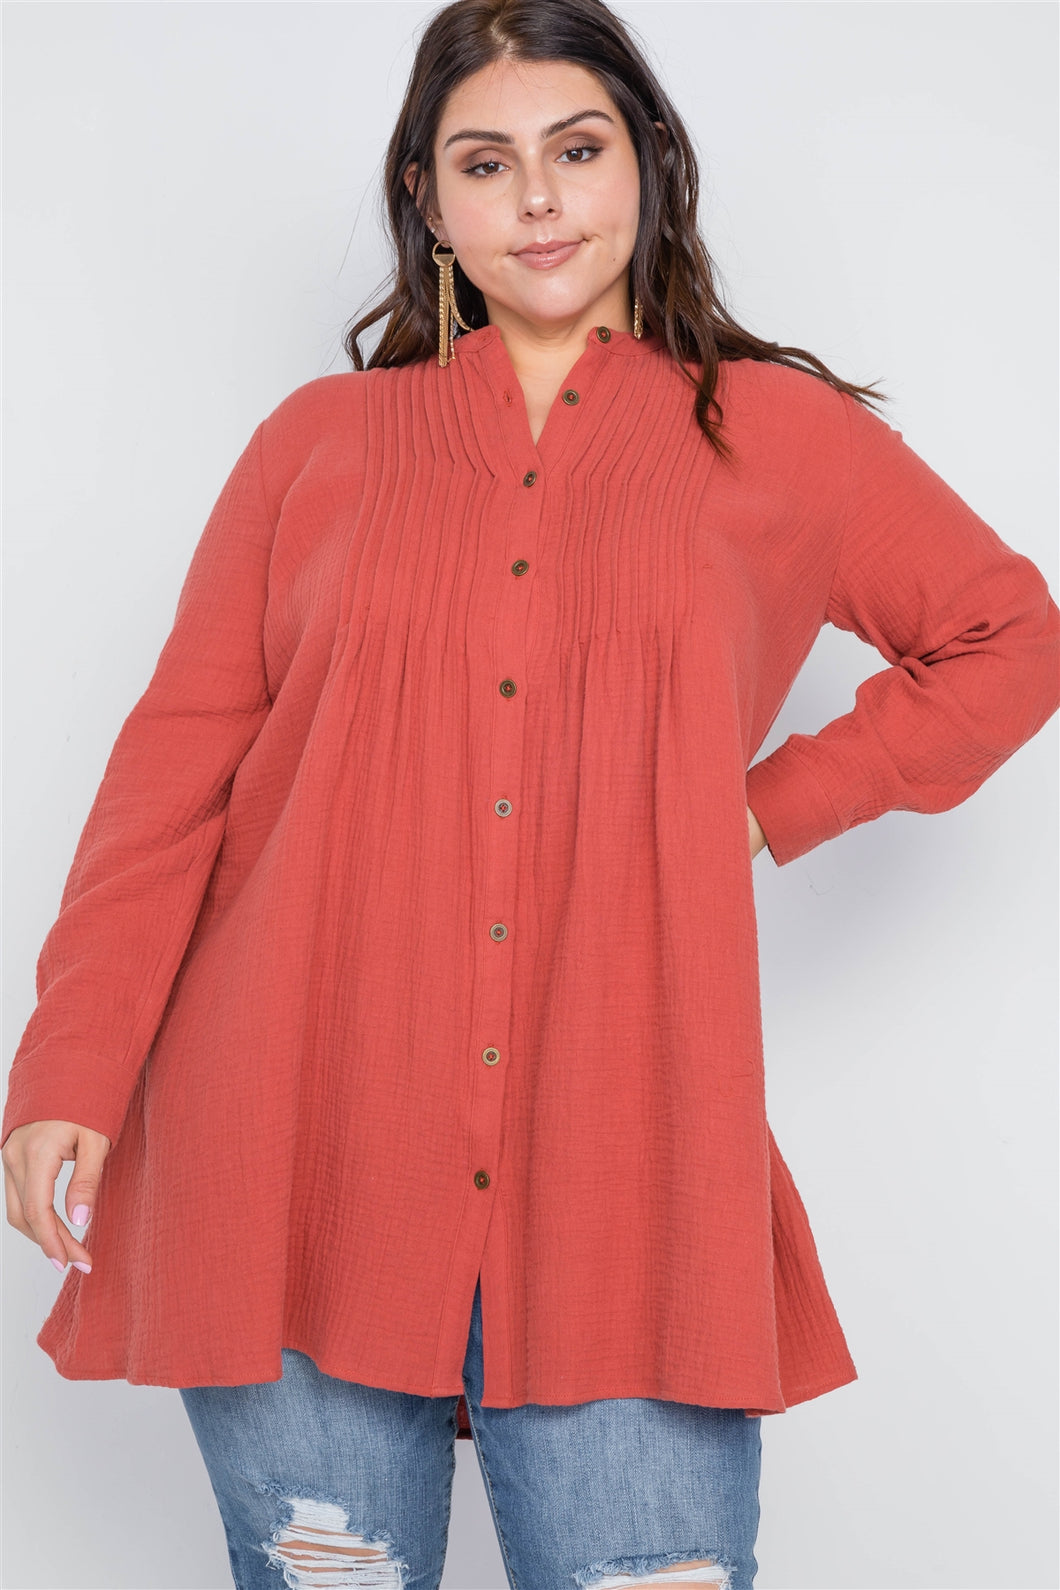 Plus Size Brick Button Down Long Sleeve Shirt Dress